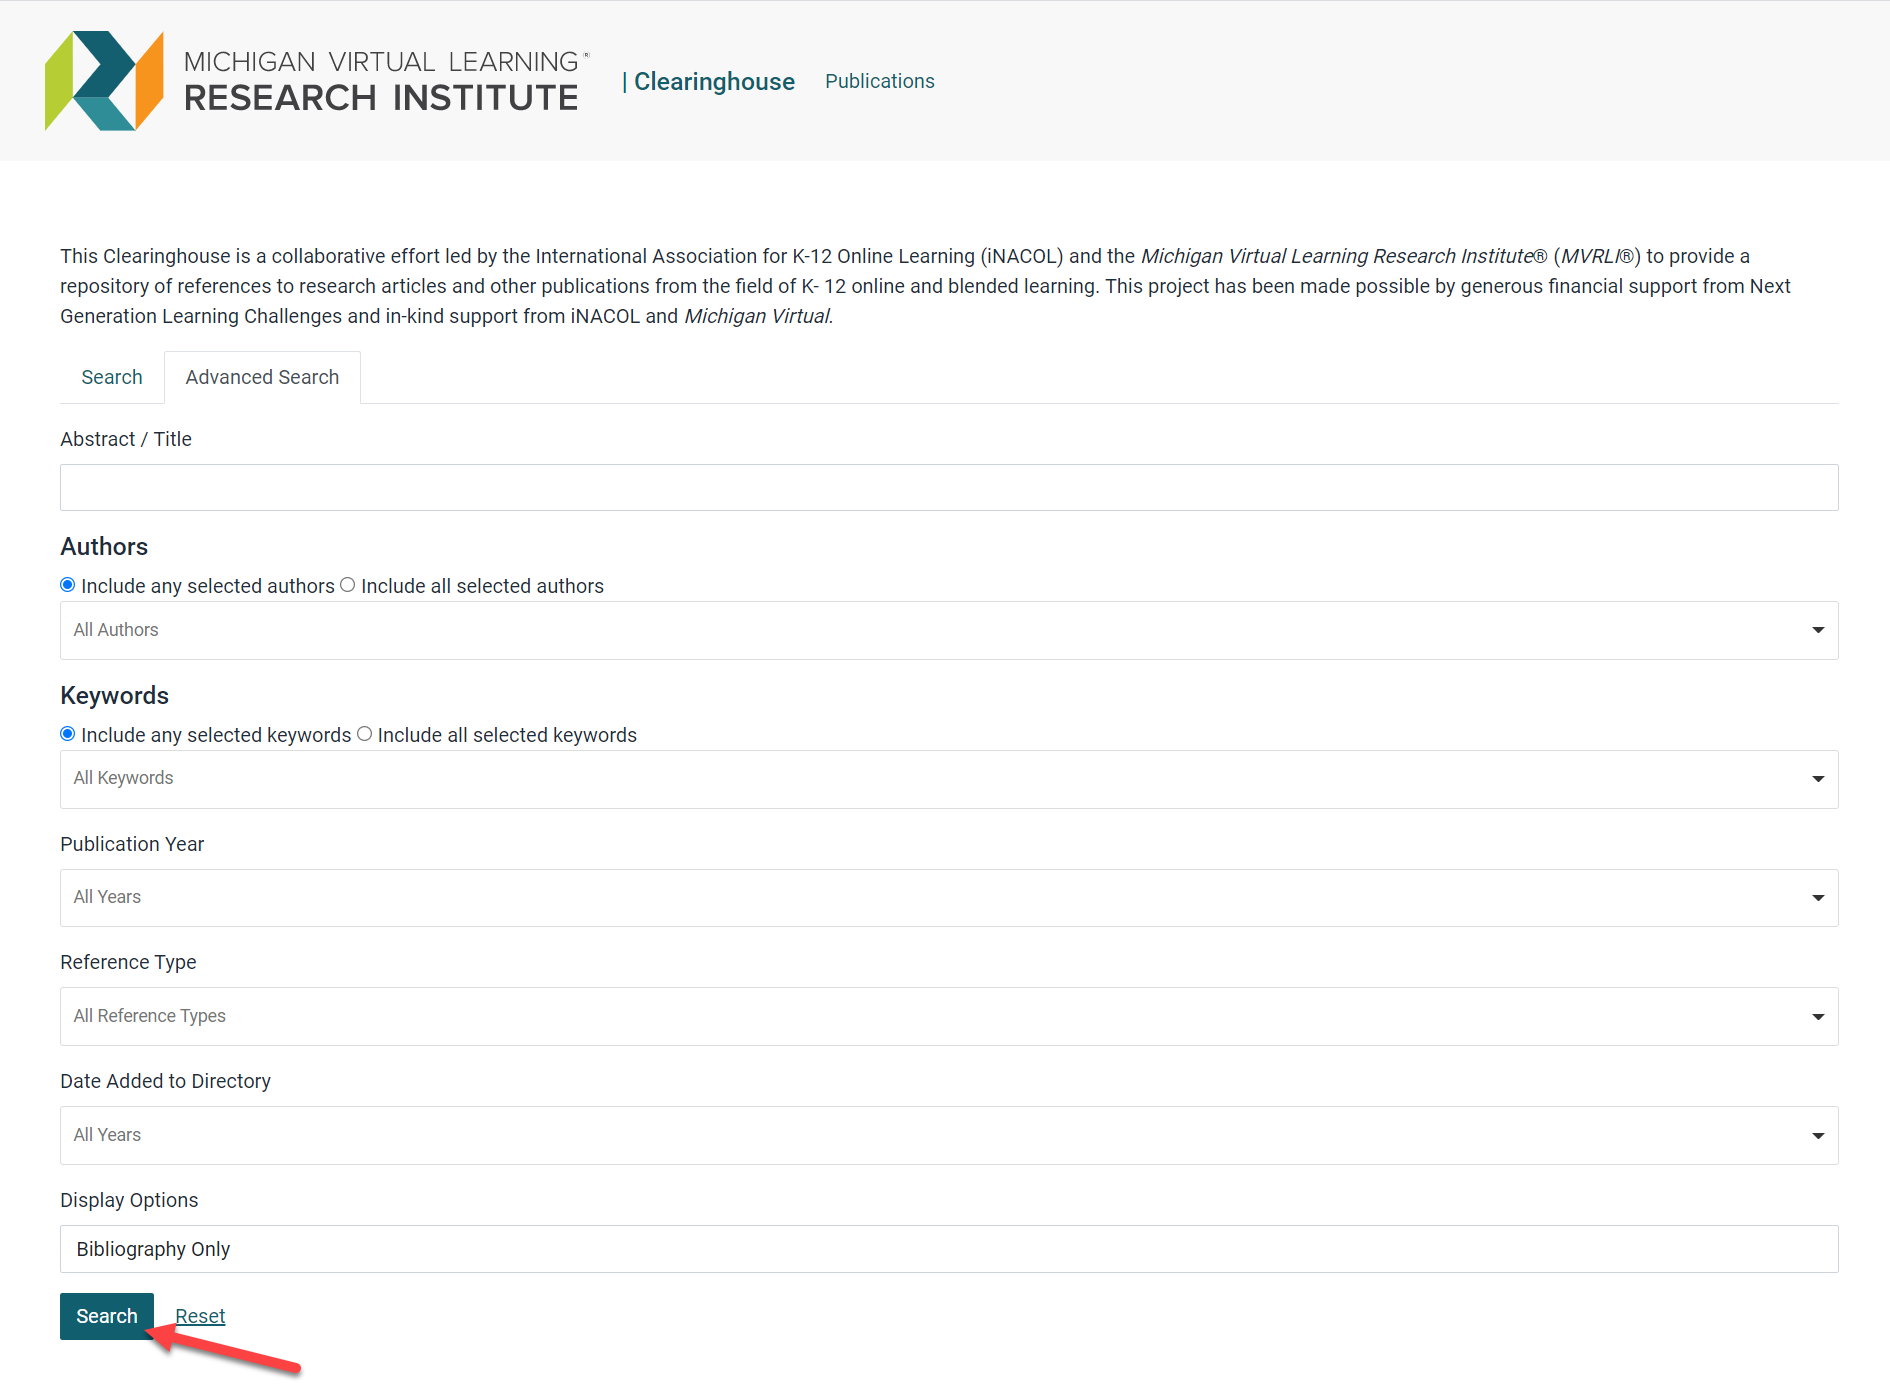 Image of the advanced search fields within the Research Clearinghosue.